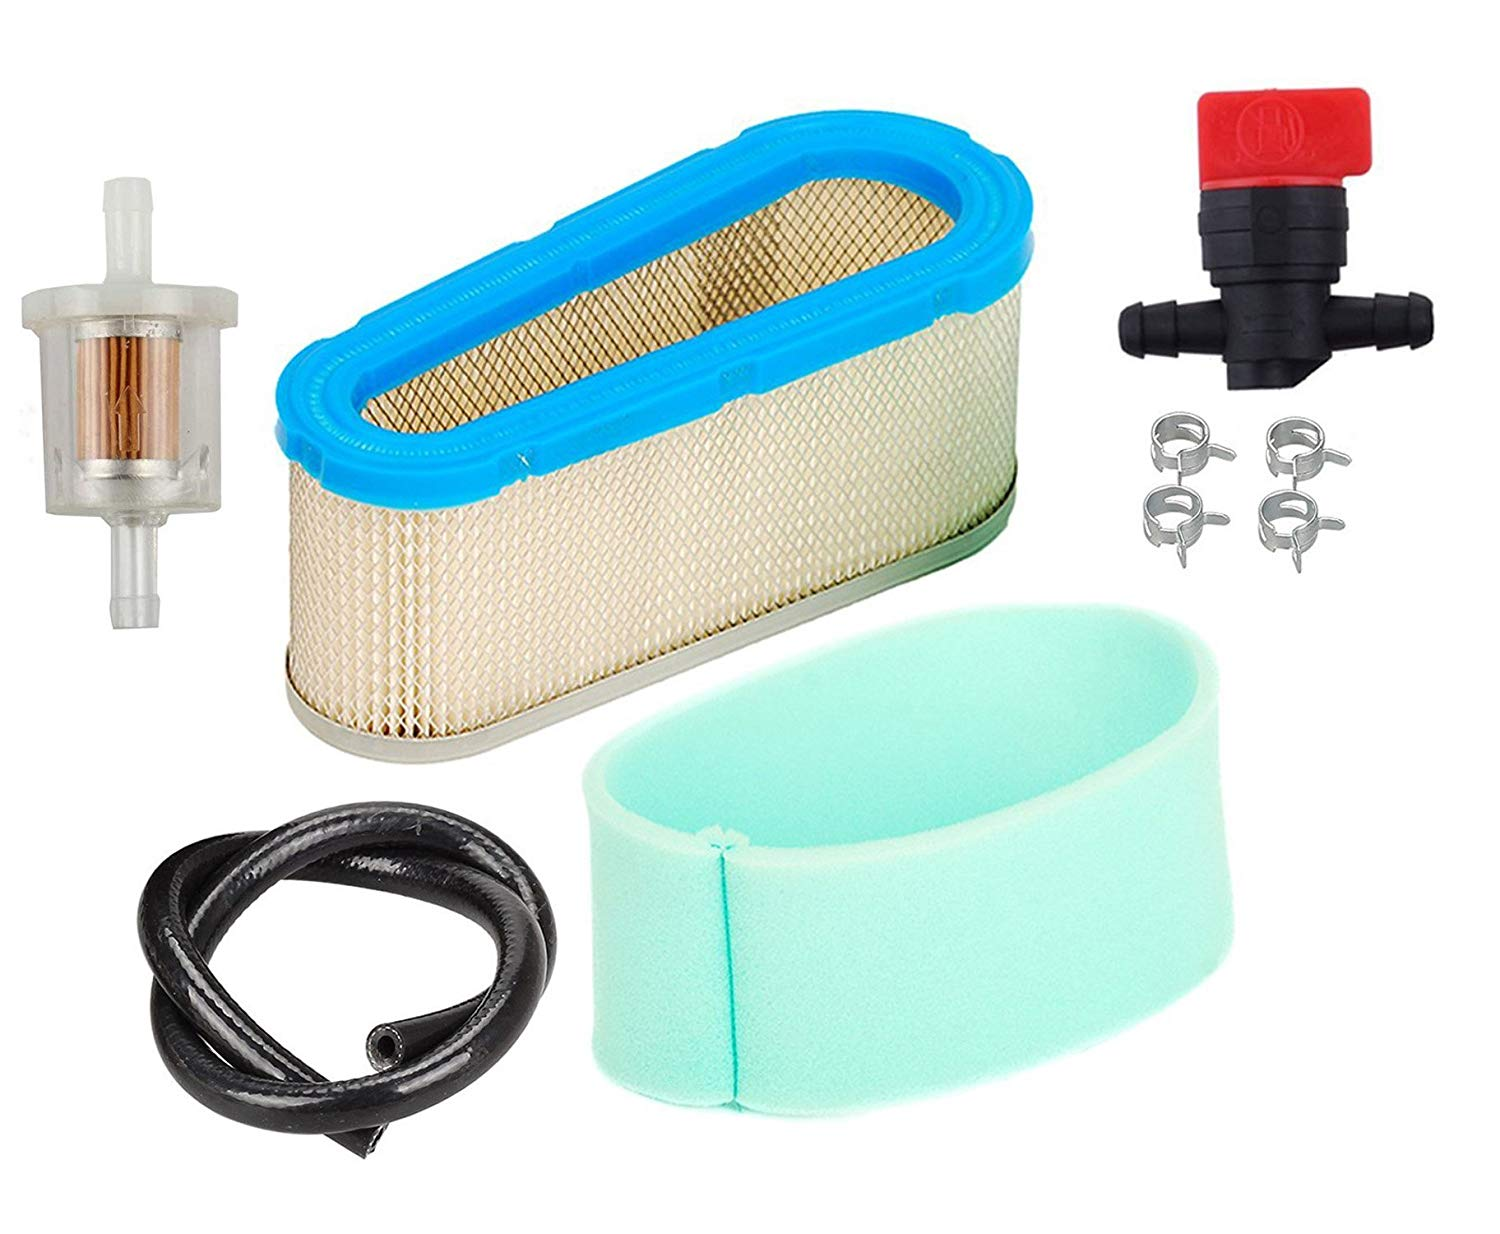 HIFROM 36356 Air Filter 36357 Pre Filter With 698183 Shut Off Valve 493629 Fuel Filter Fuel Line for Tecumseh OHV125 OHV130 OHV120